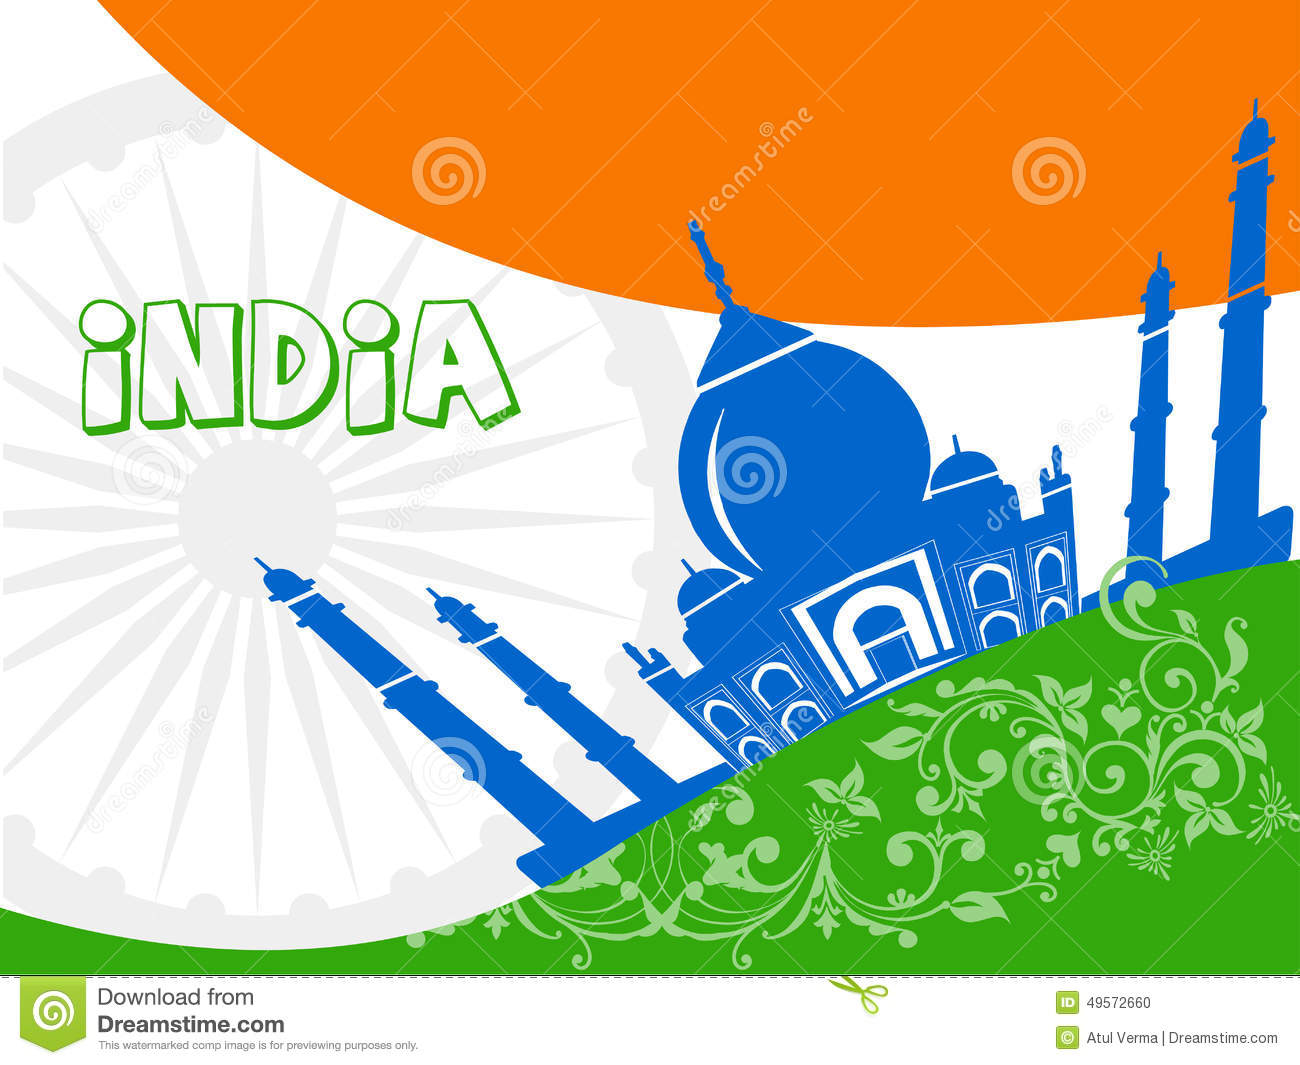 India Tourism, India Travel With Taj Mahal Agra Background Stock.